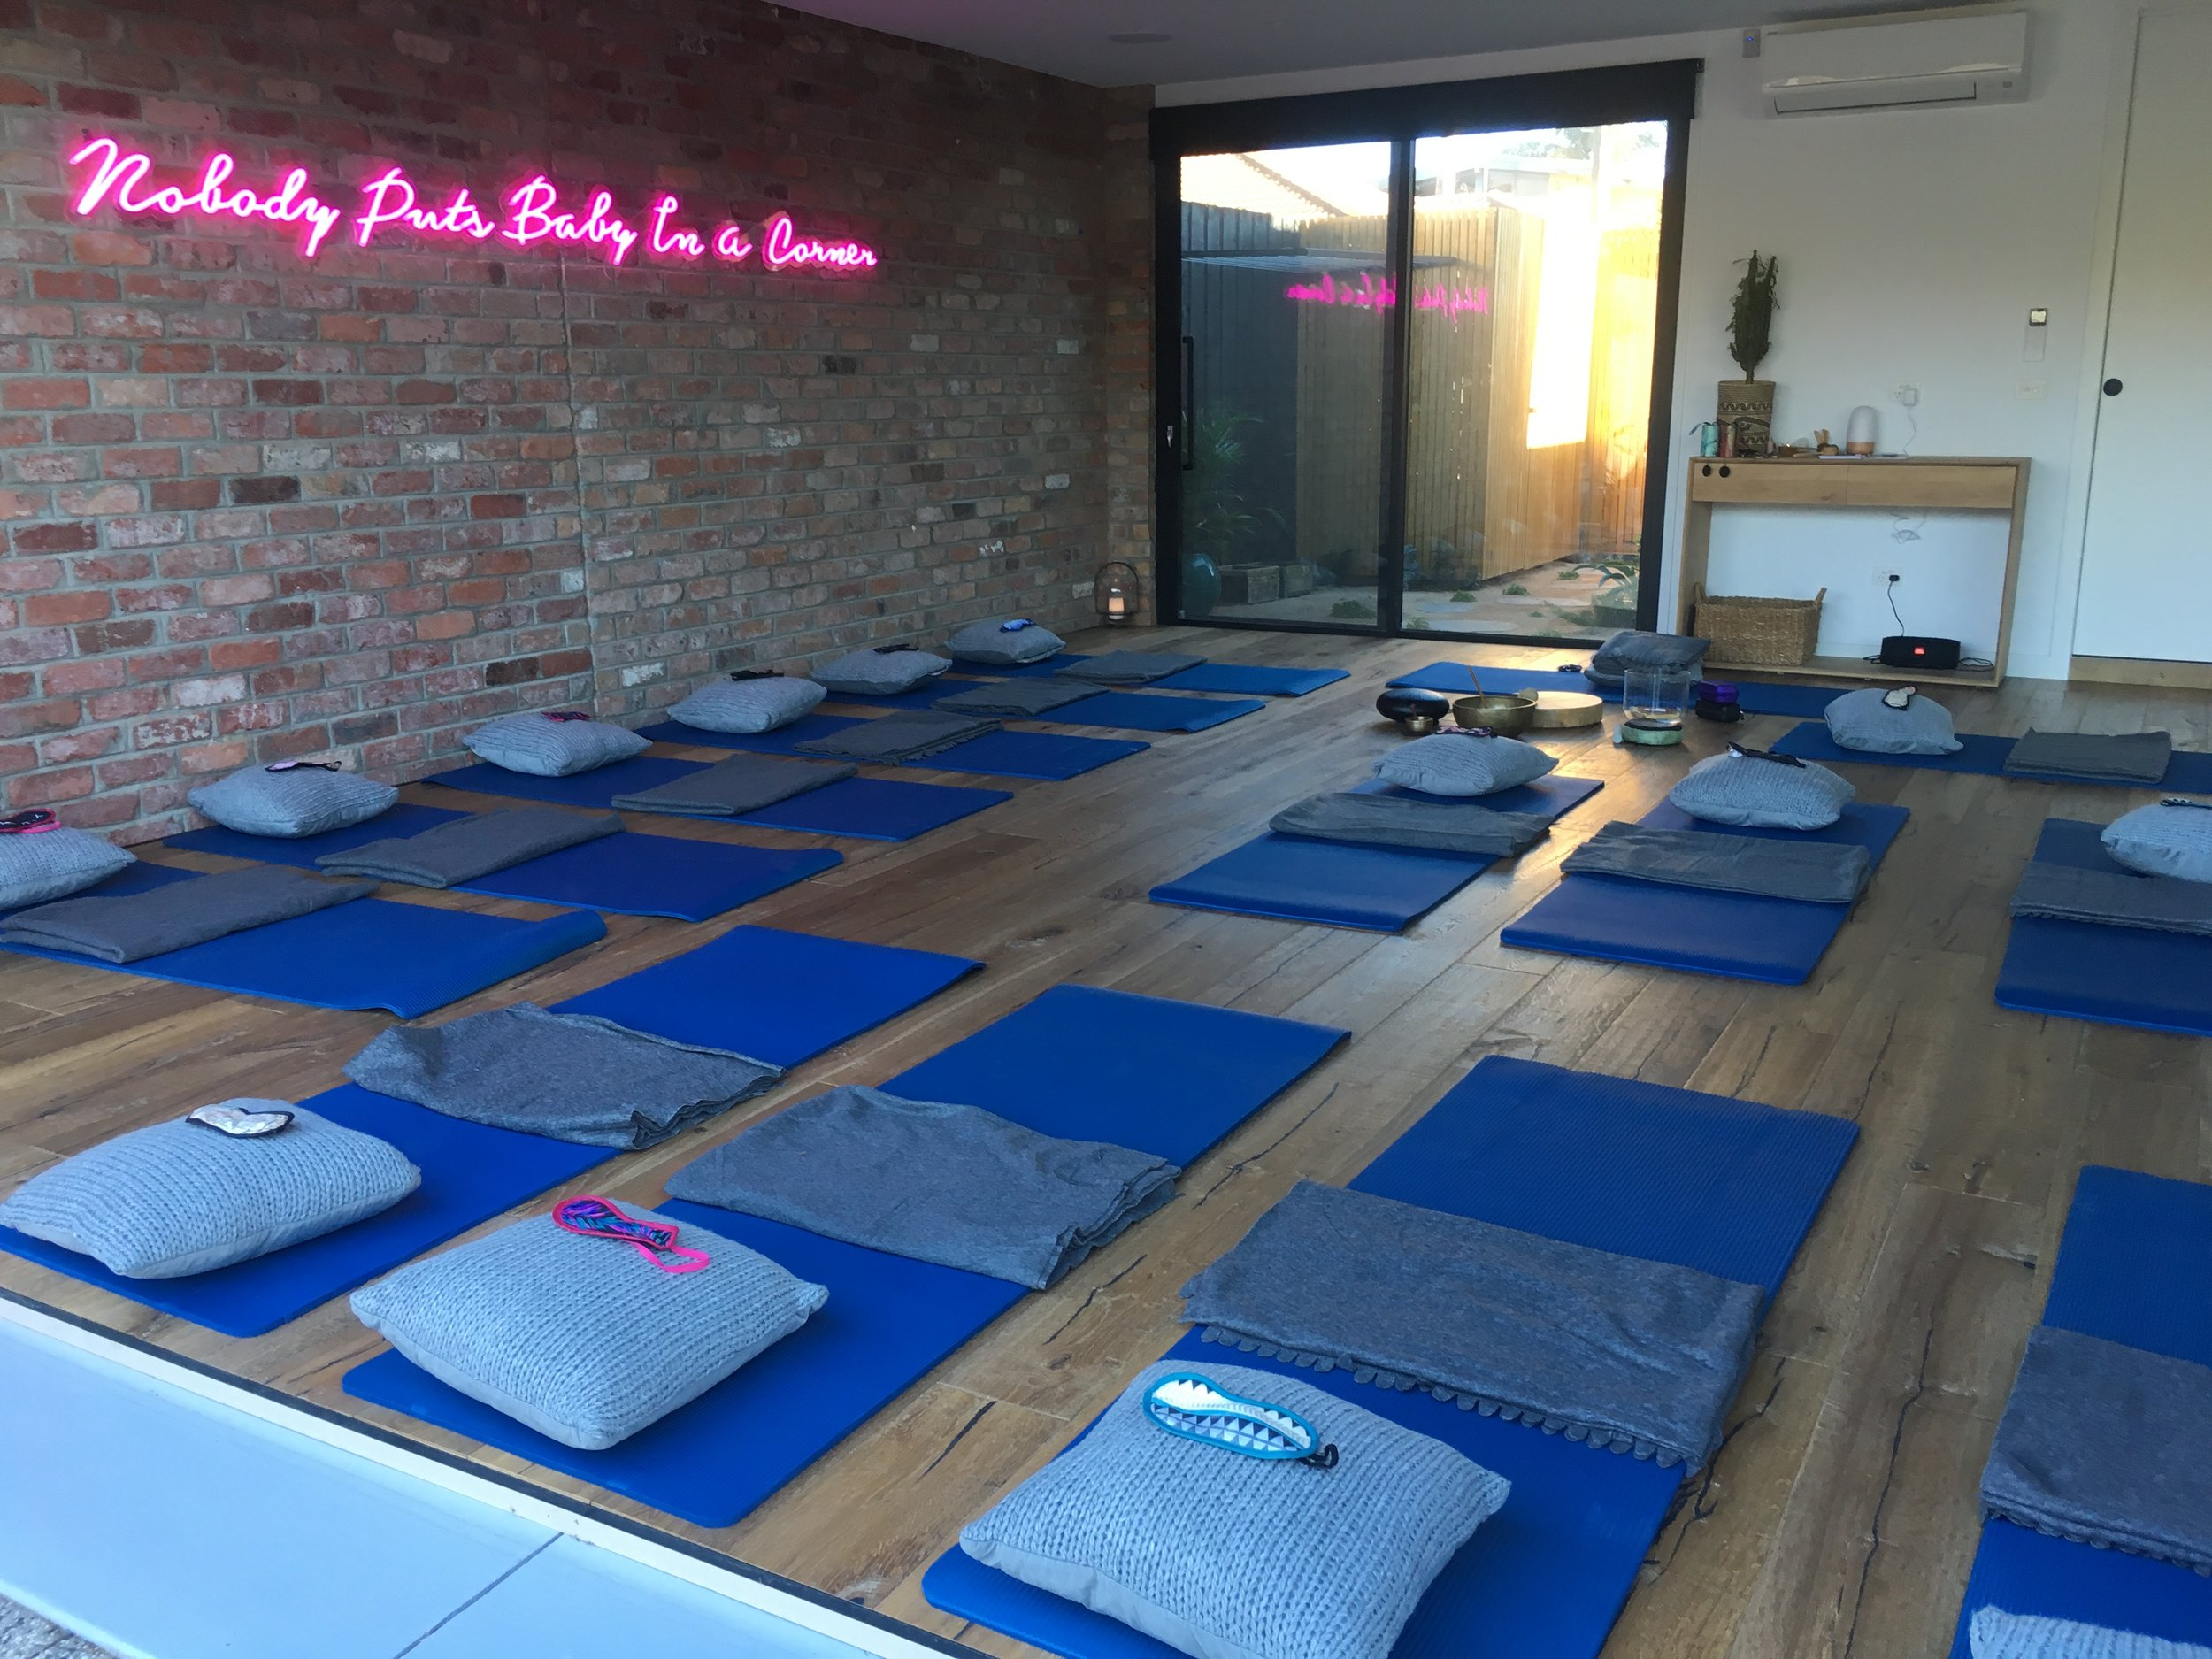 'Baby's Corner' -  A beautiful home studio and the location of our regularly SOLD OUT monthly aromaZen 'Full Moon' experiences. Home studios are a great place to grow your tribe with aromaZen.